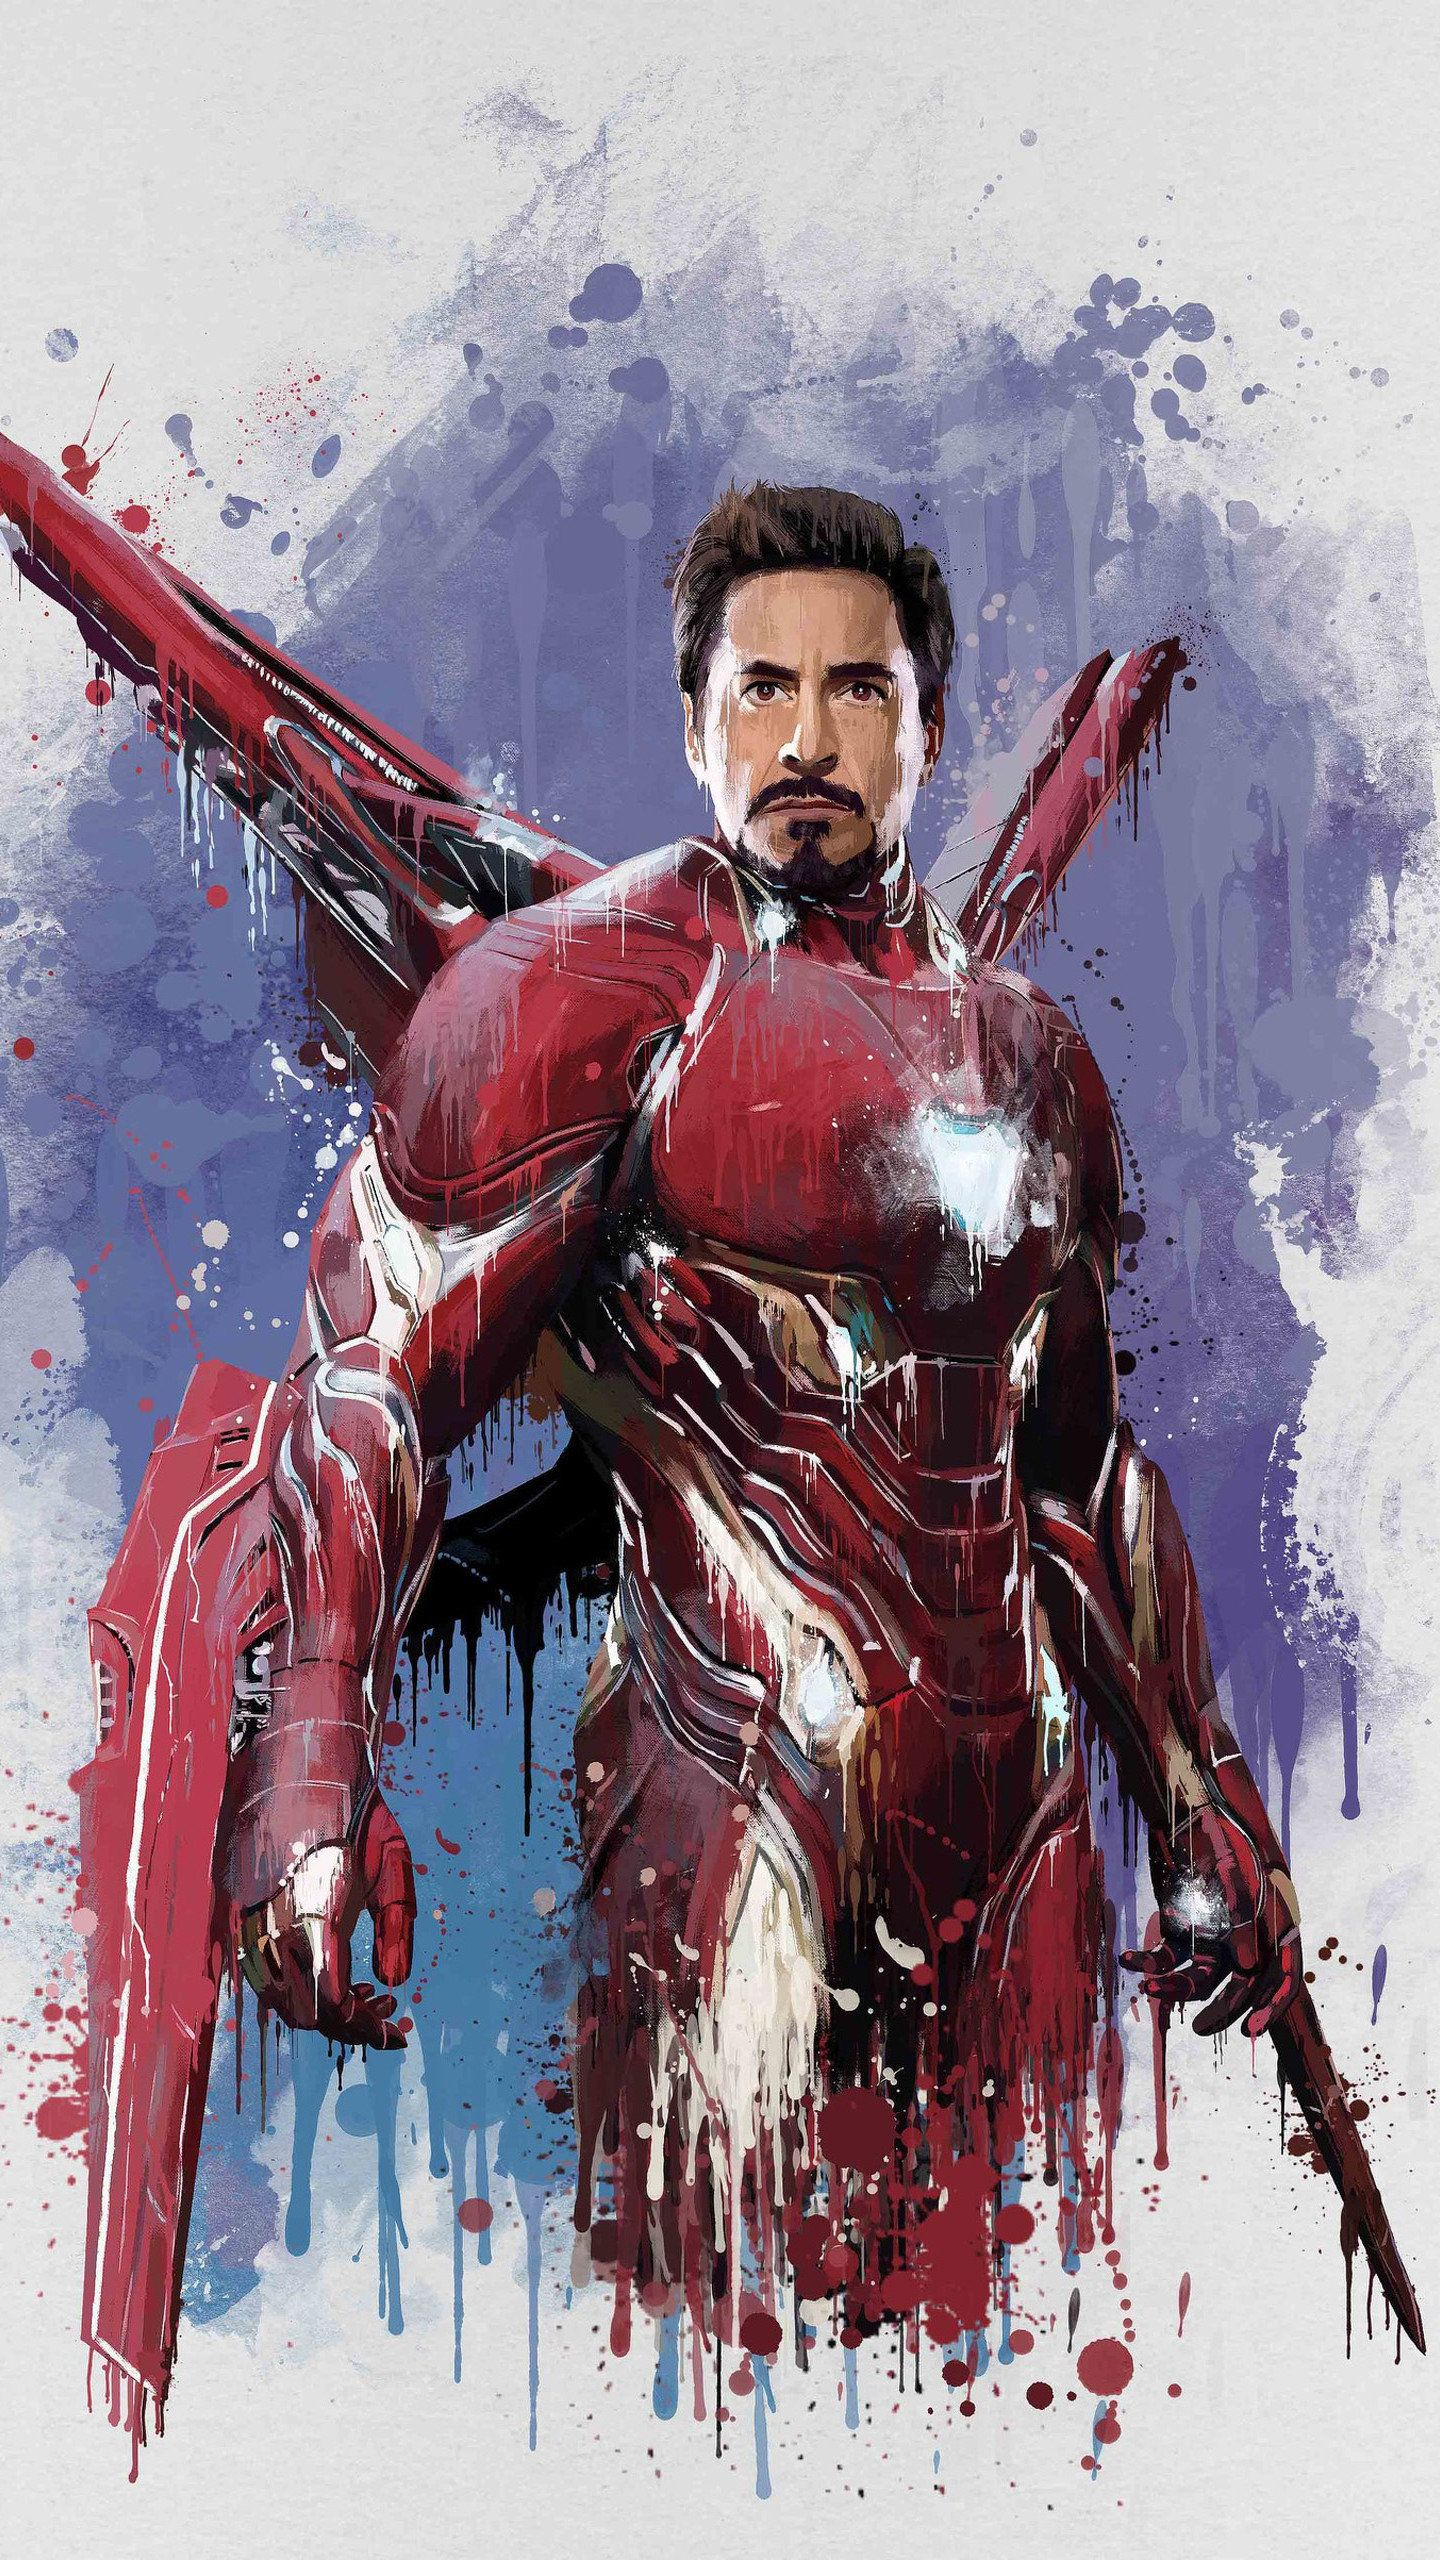 Iron Man New Suit For Avengers Infinity War Movie Hd Movies Wallpapers Photos And Pictures Marvel Avengers The Avengers Marvel Kahramanlari